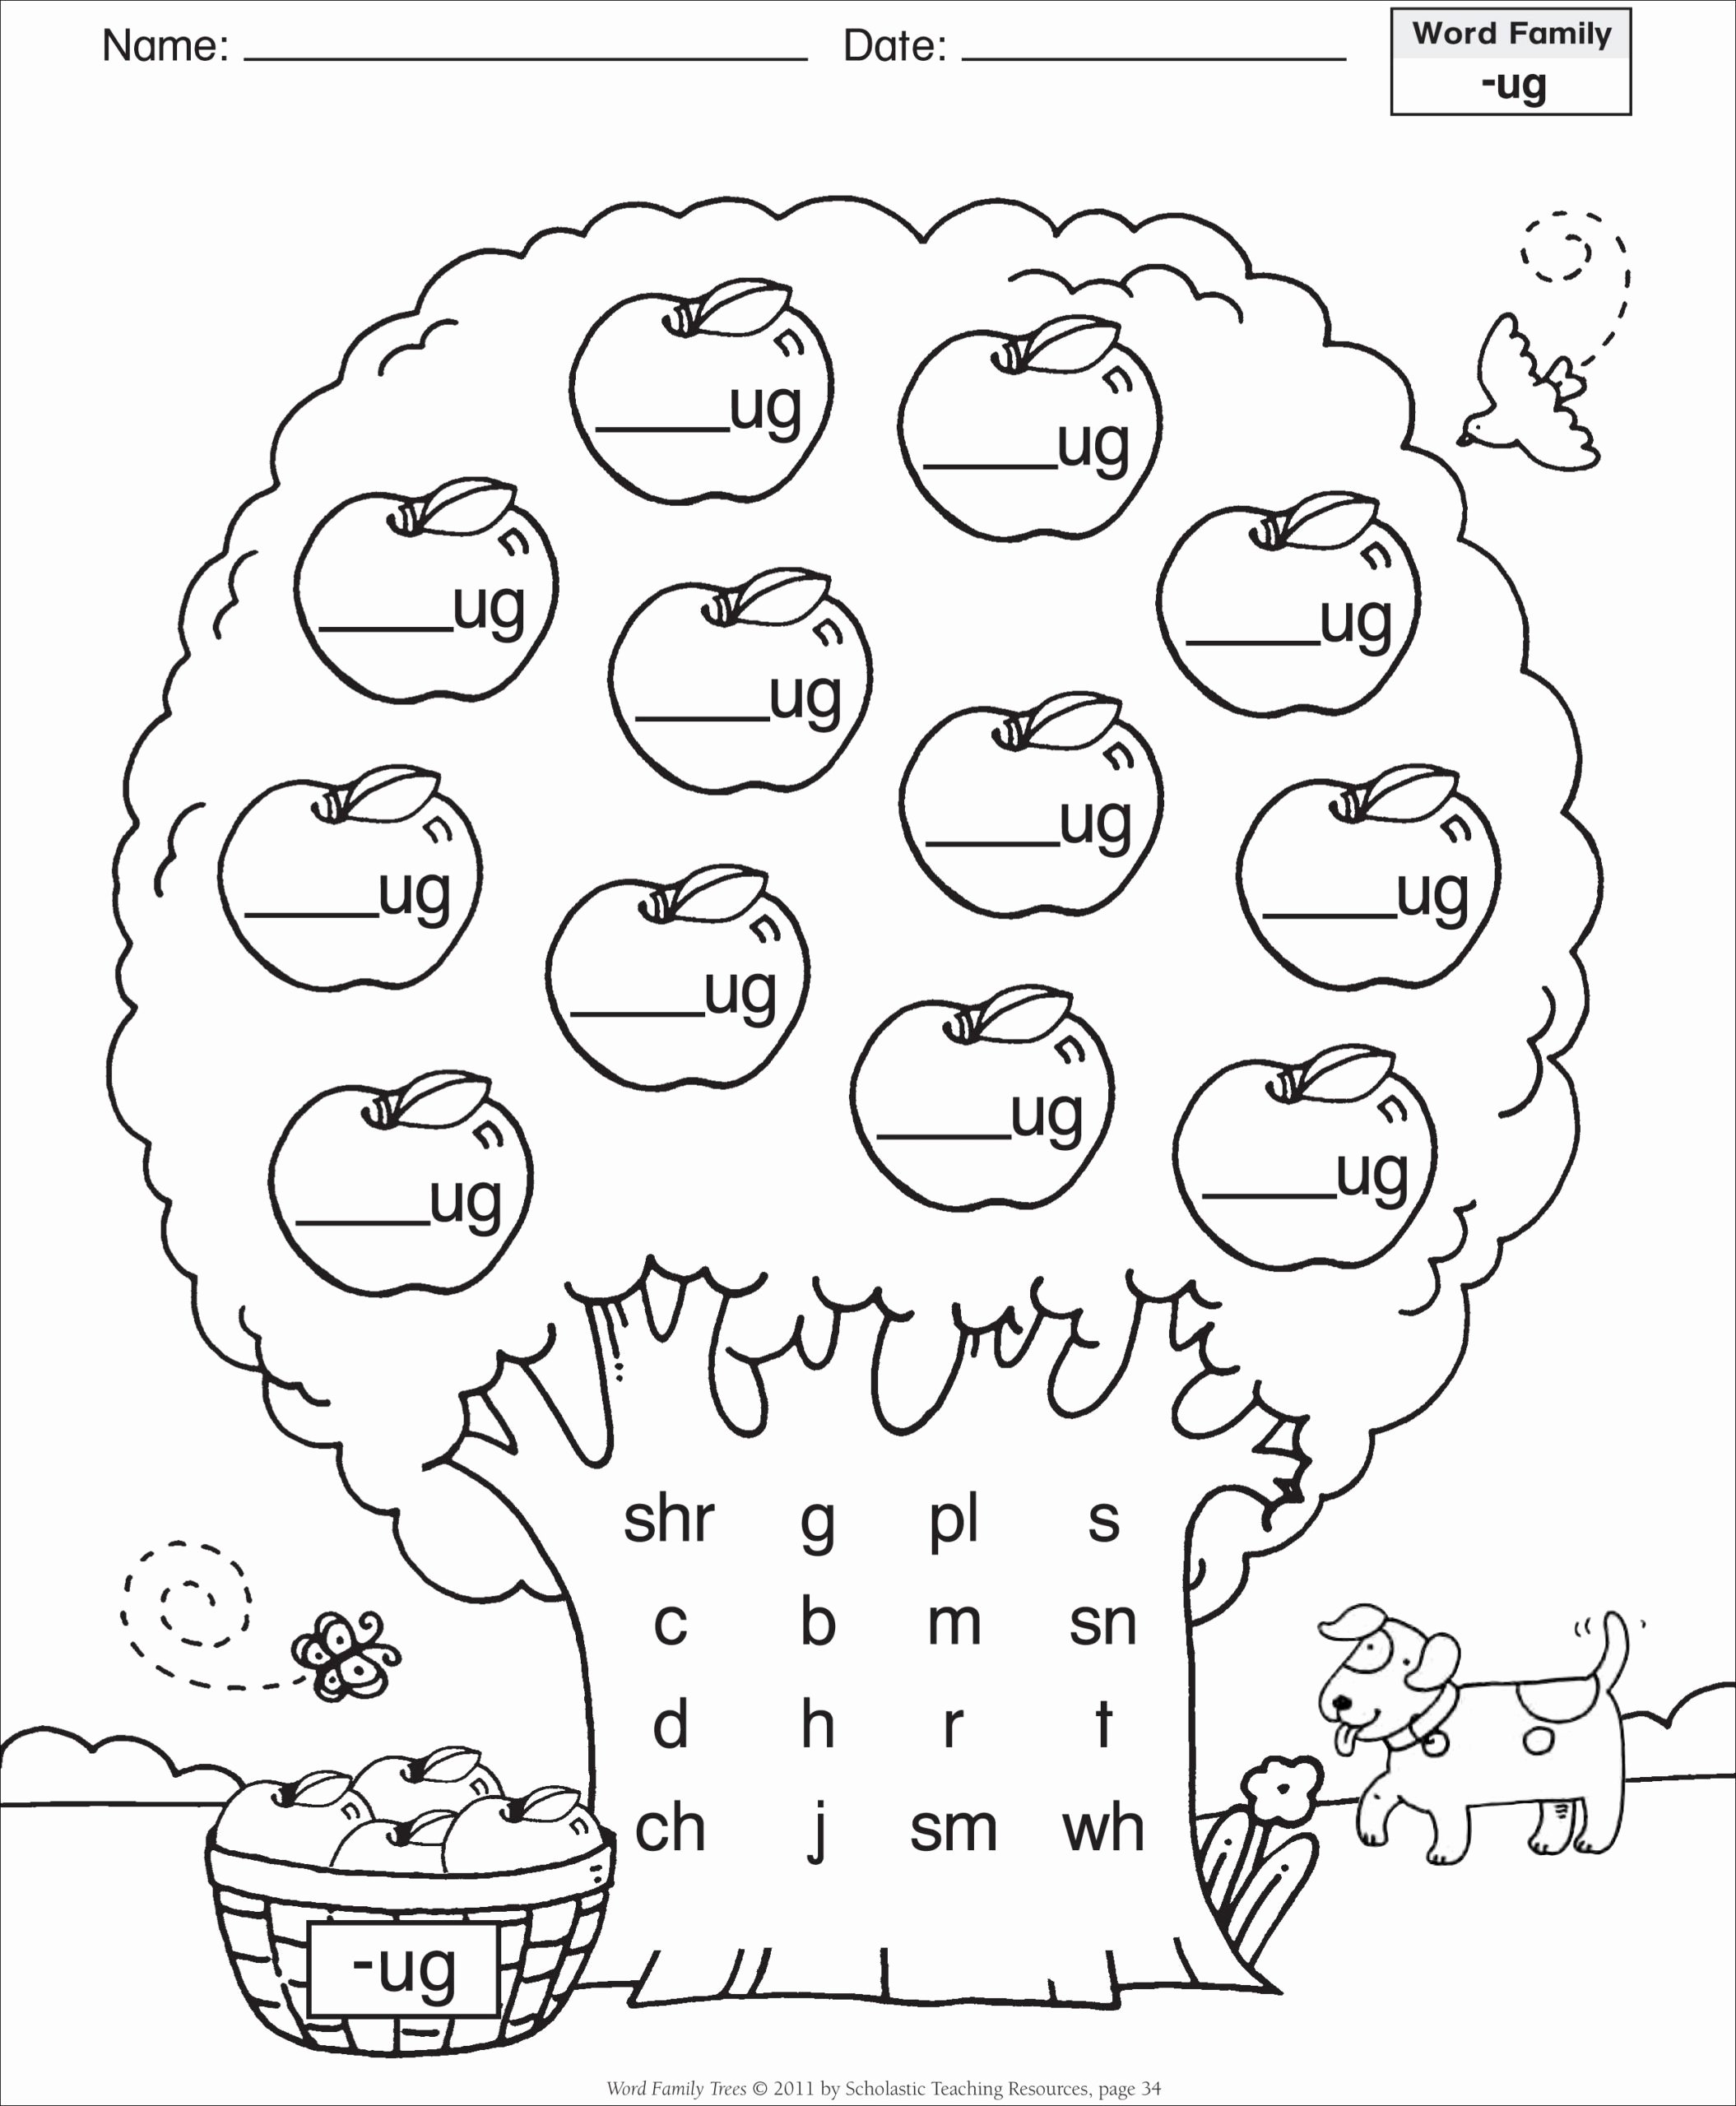 Ou Ow Worksheets 3rd Grade Best Of Short Vowel Ug Word Family Tree Families Reading Ou Ow